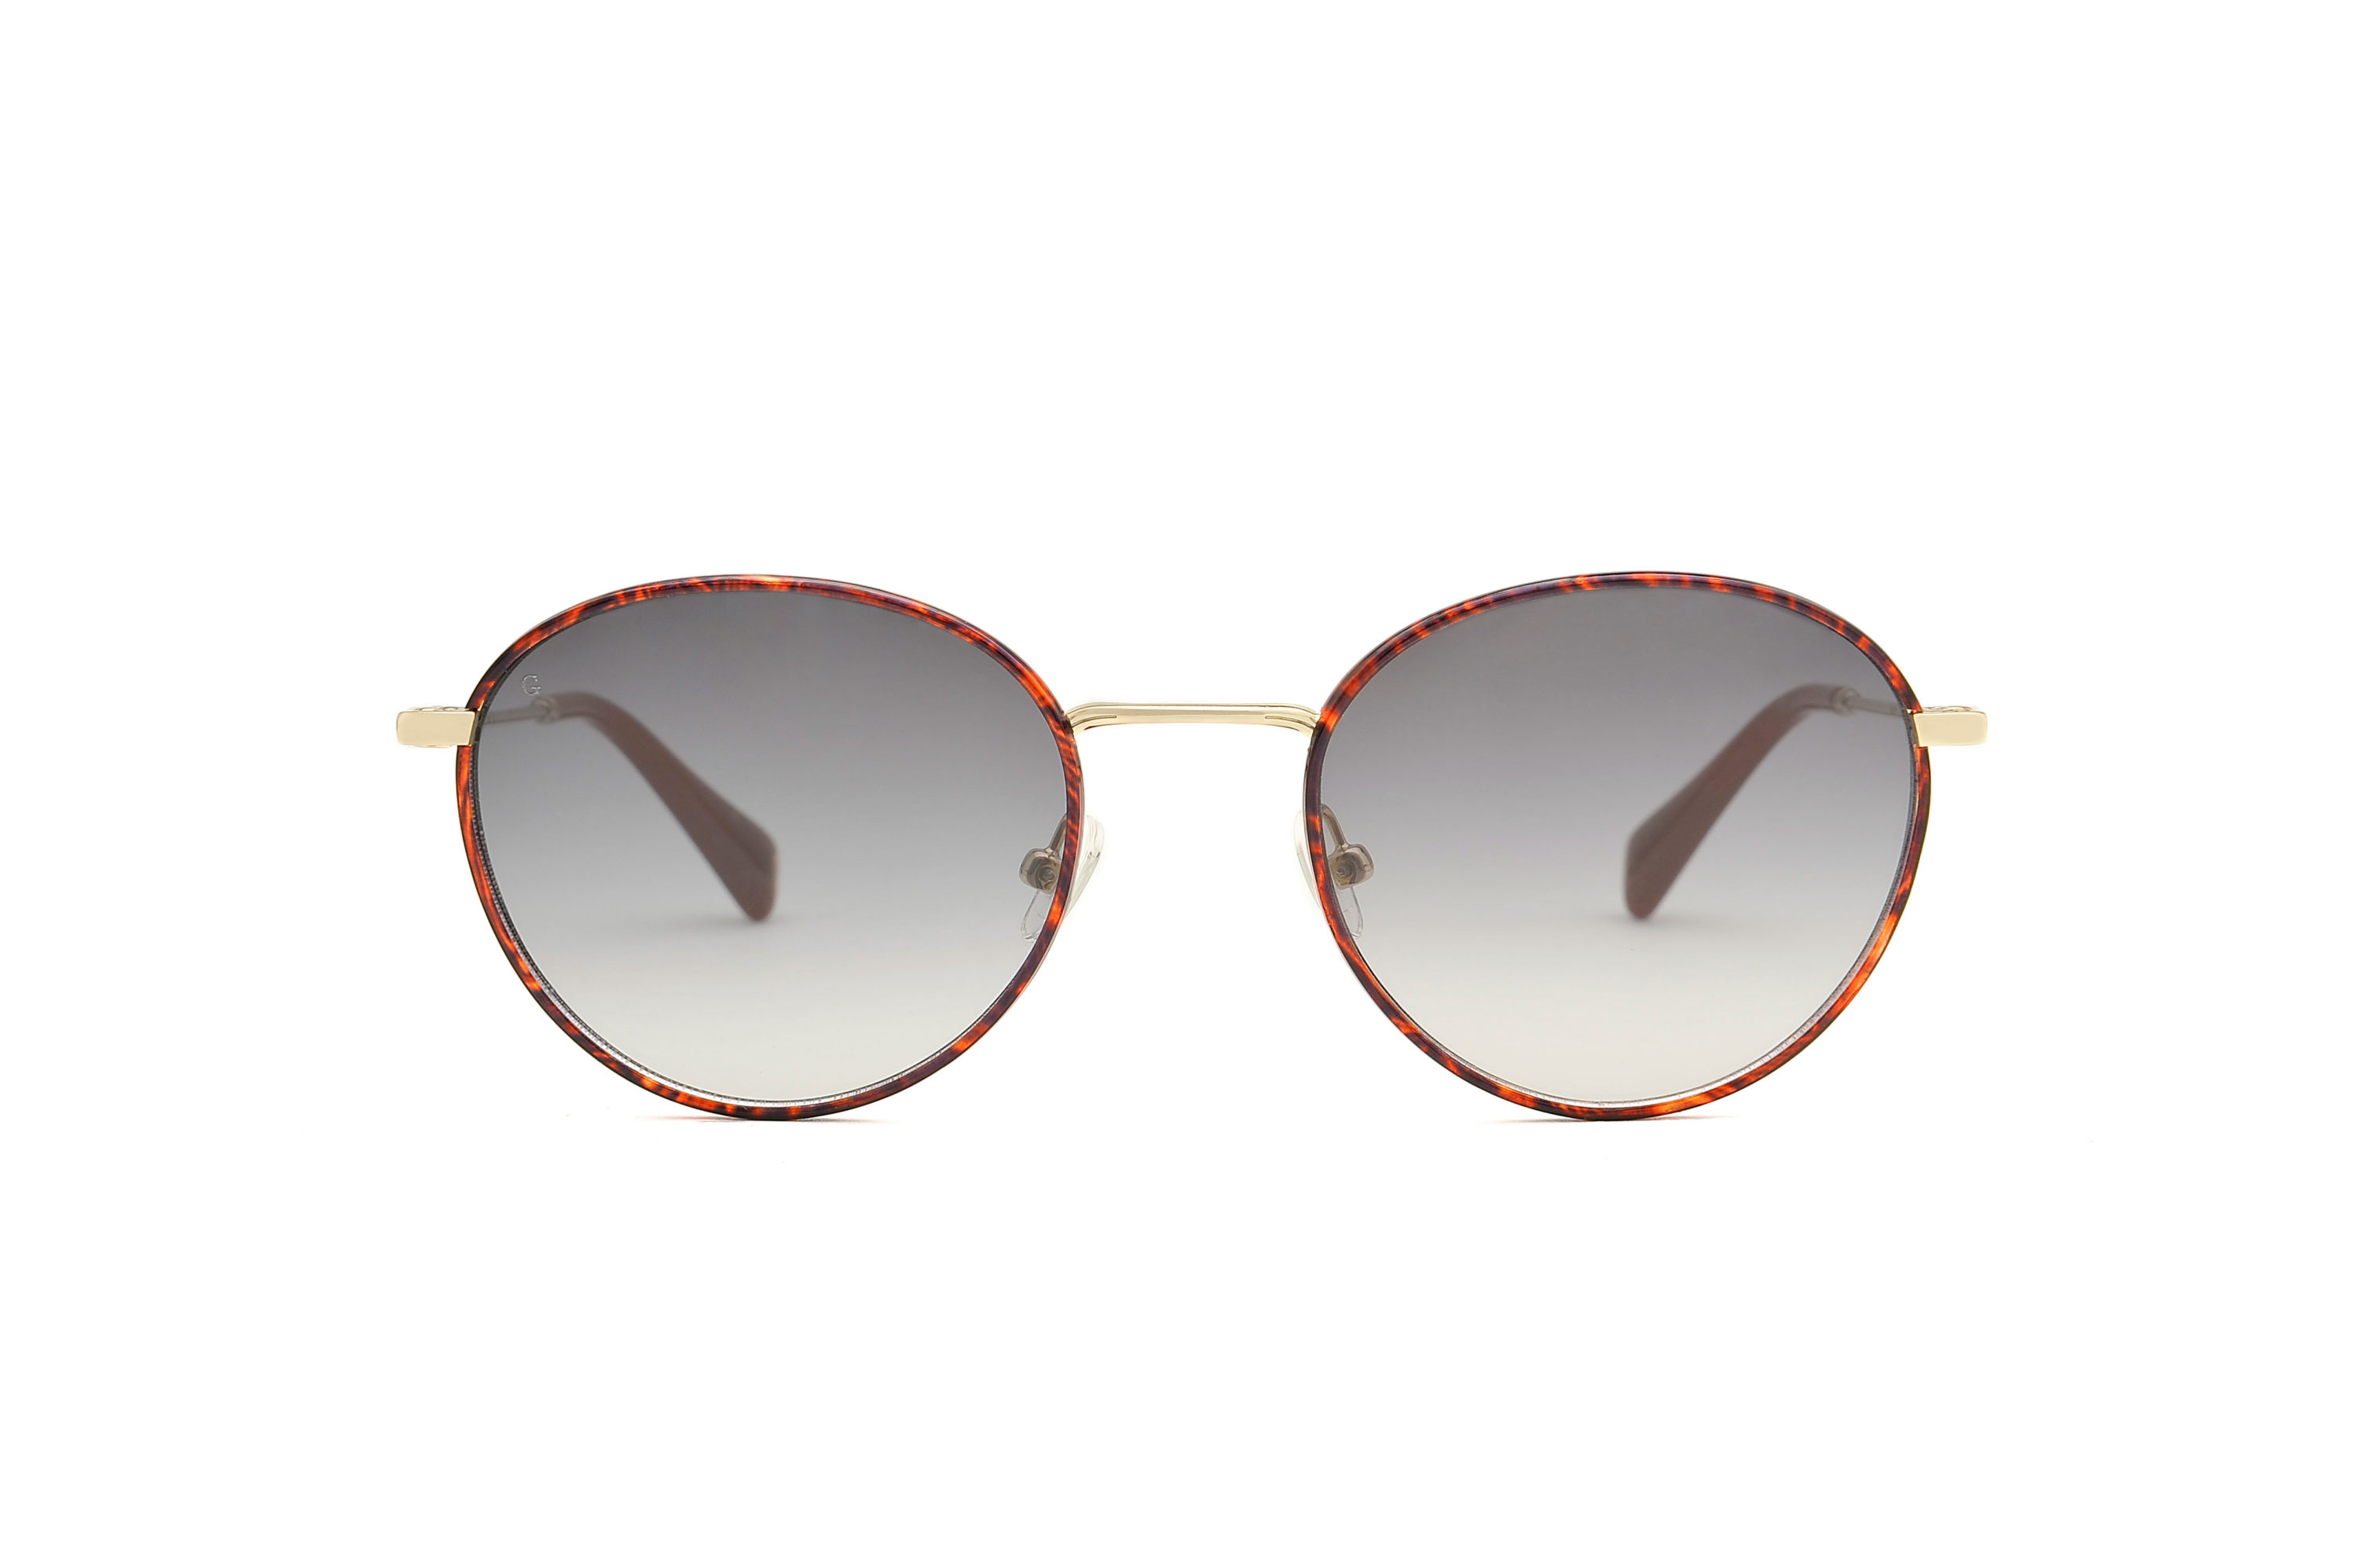 Ubud metal rounded tortoise sunglasses by GIGI Studios